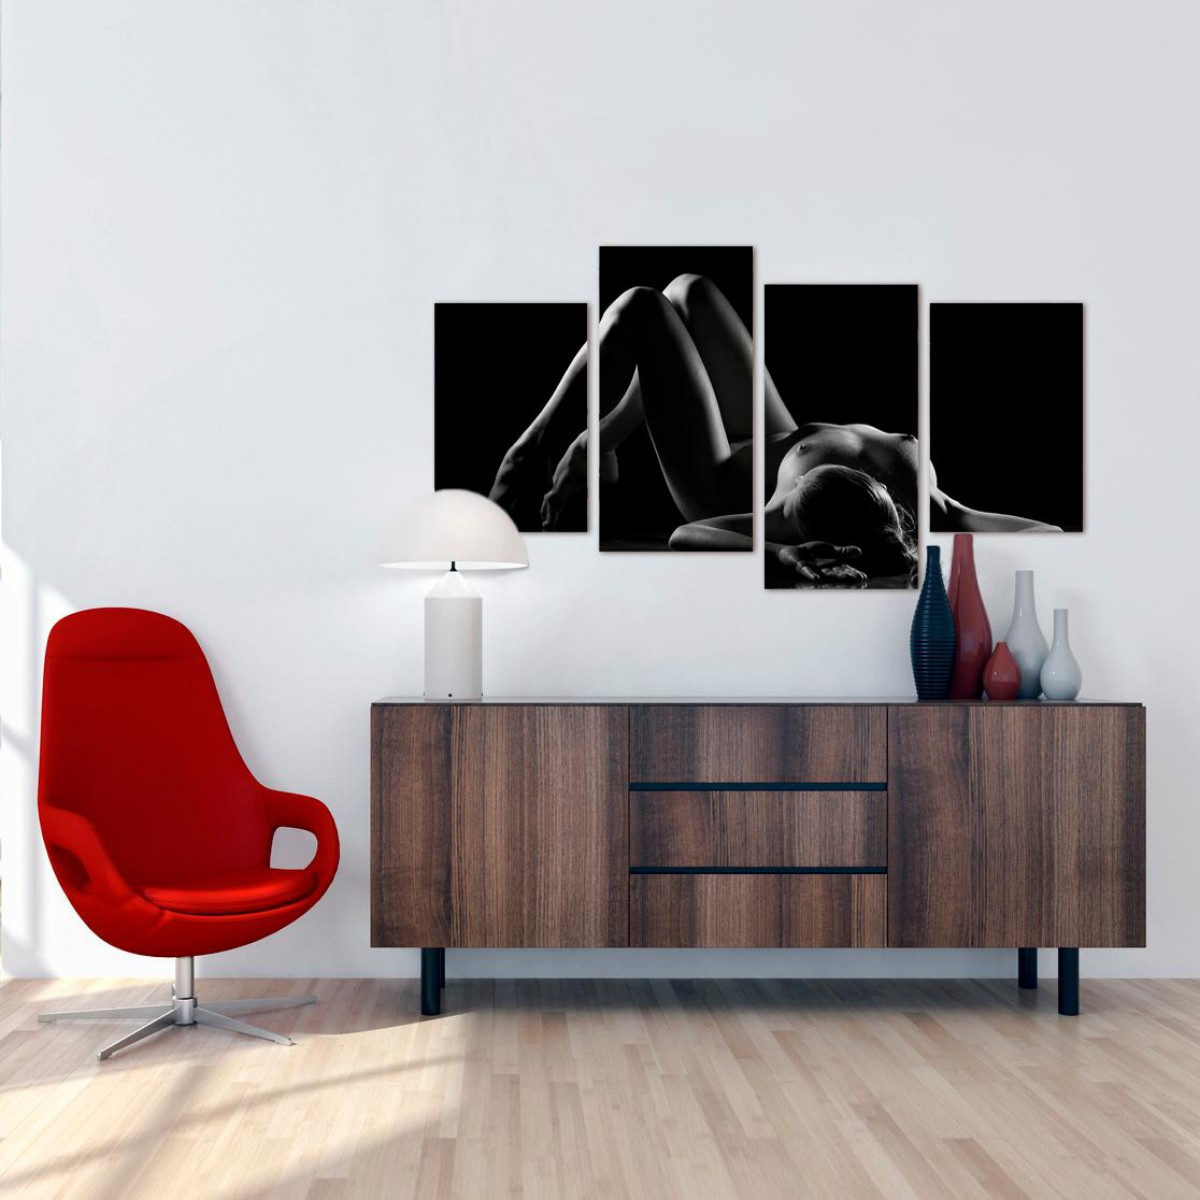 Bedroom Black White Woman Nude Erotic Canvas   Multi Set Of 4   130cm   4082